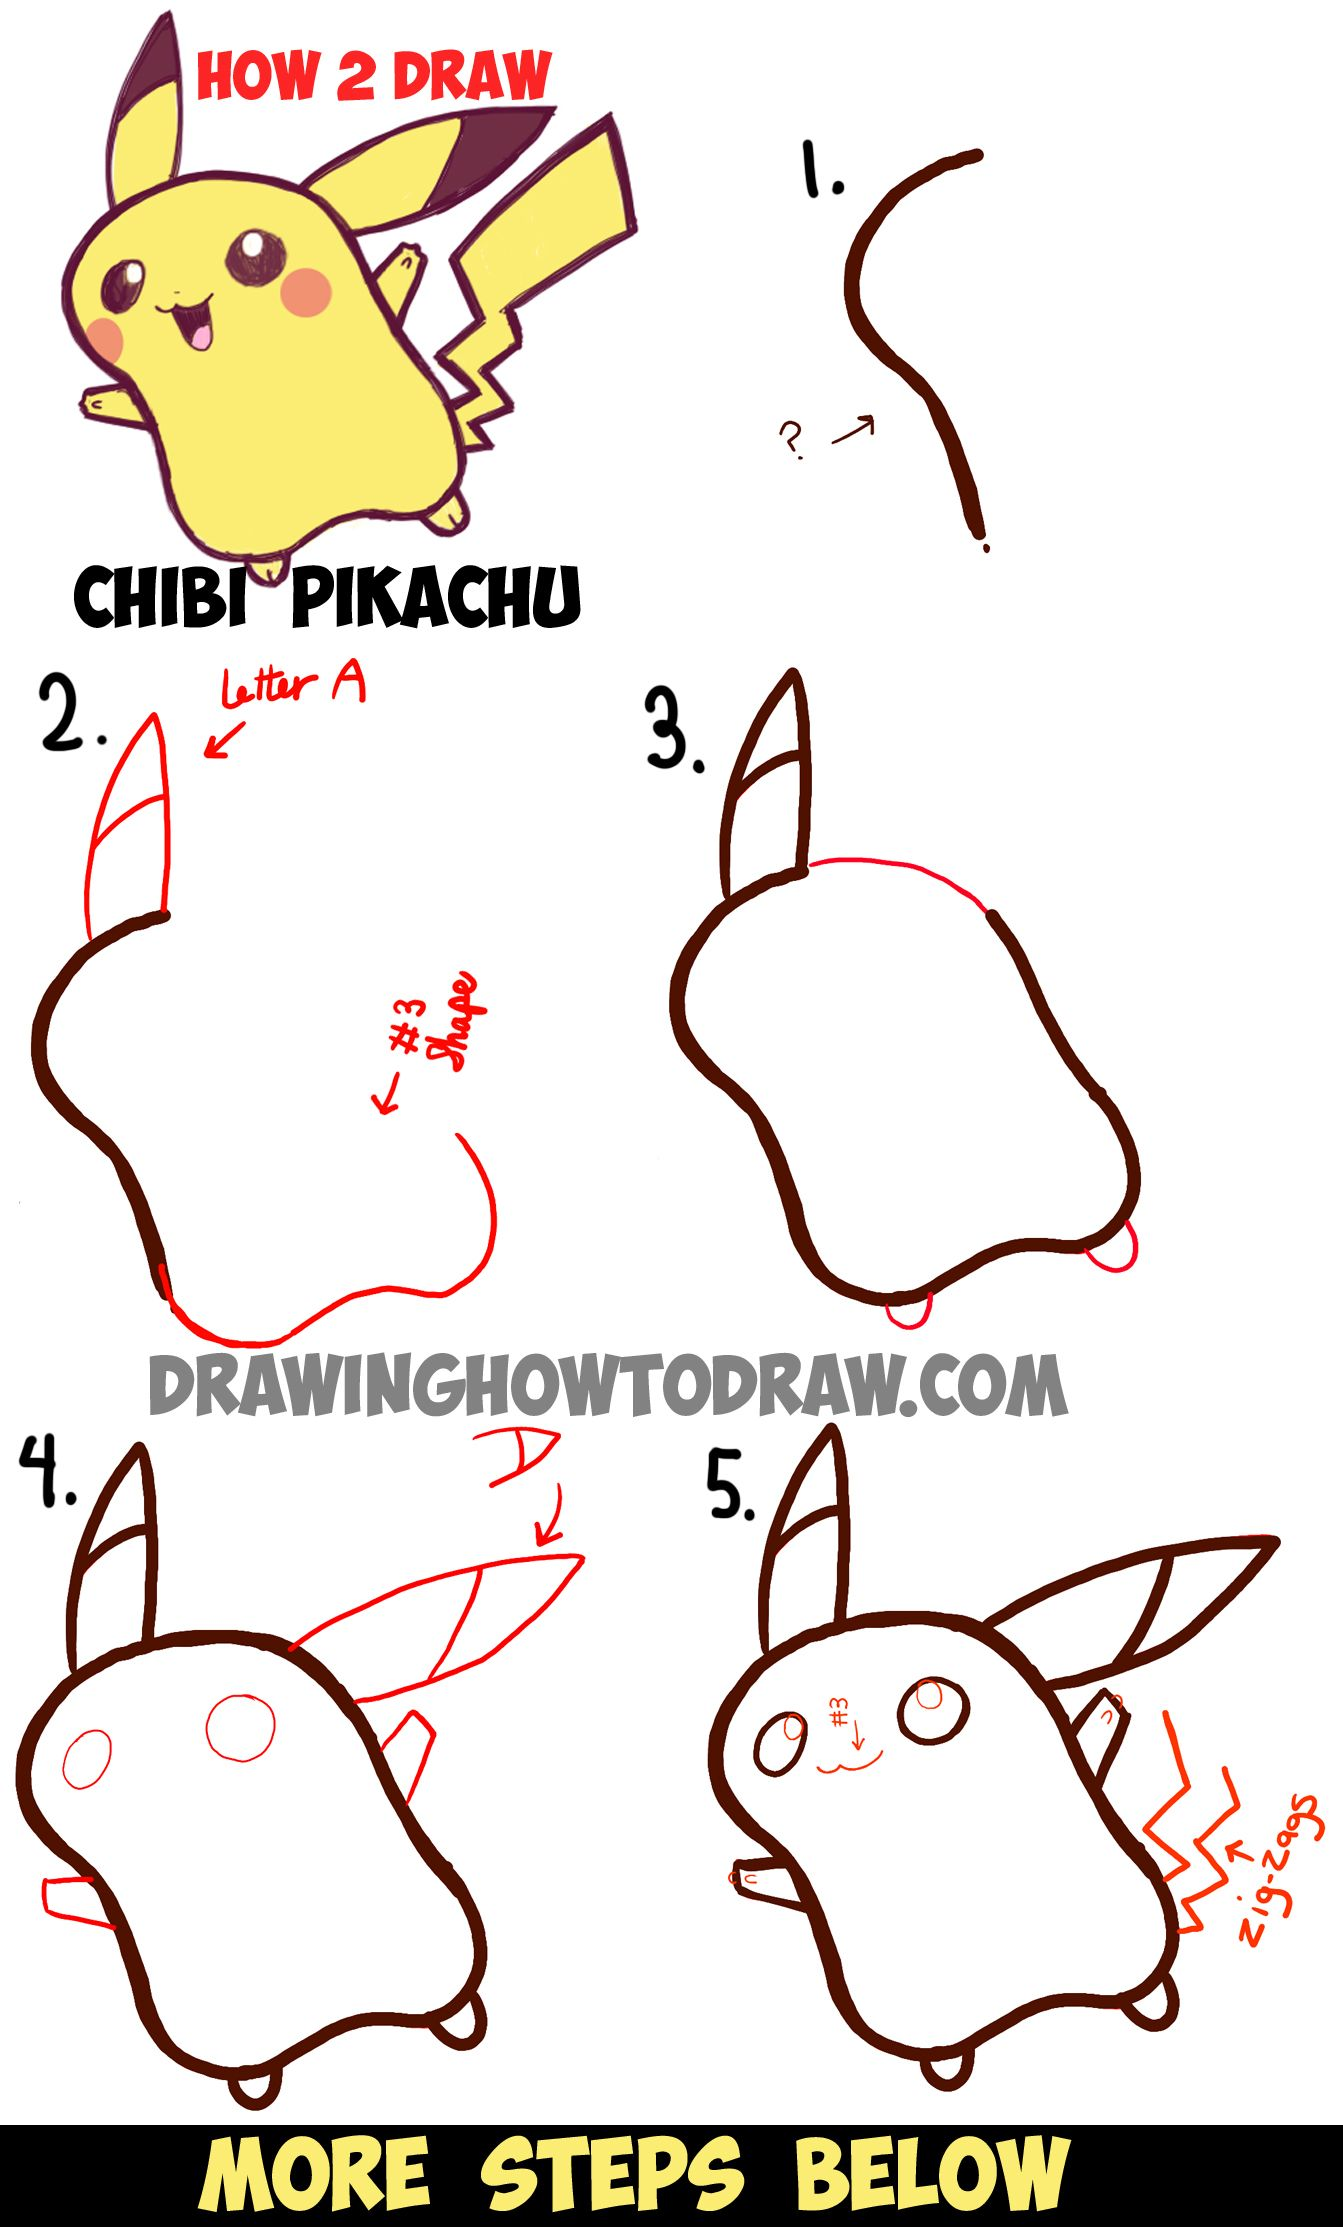 How to Draw Cute Baby Chibi Pikachu from Pokemon - Step by Step ...